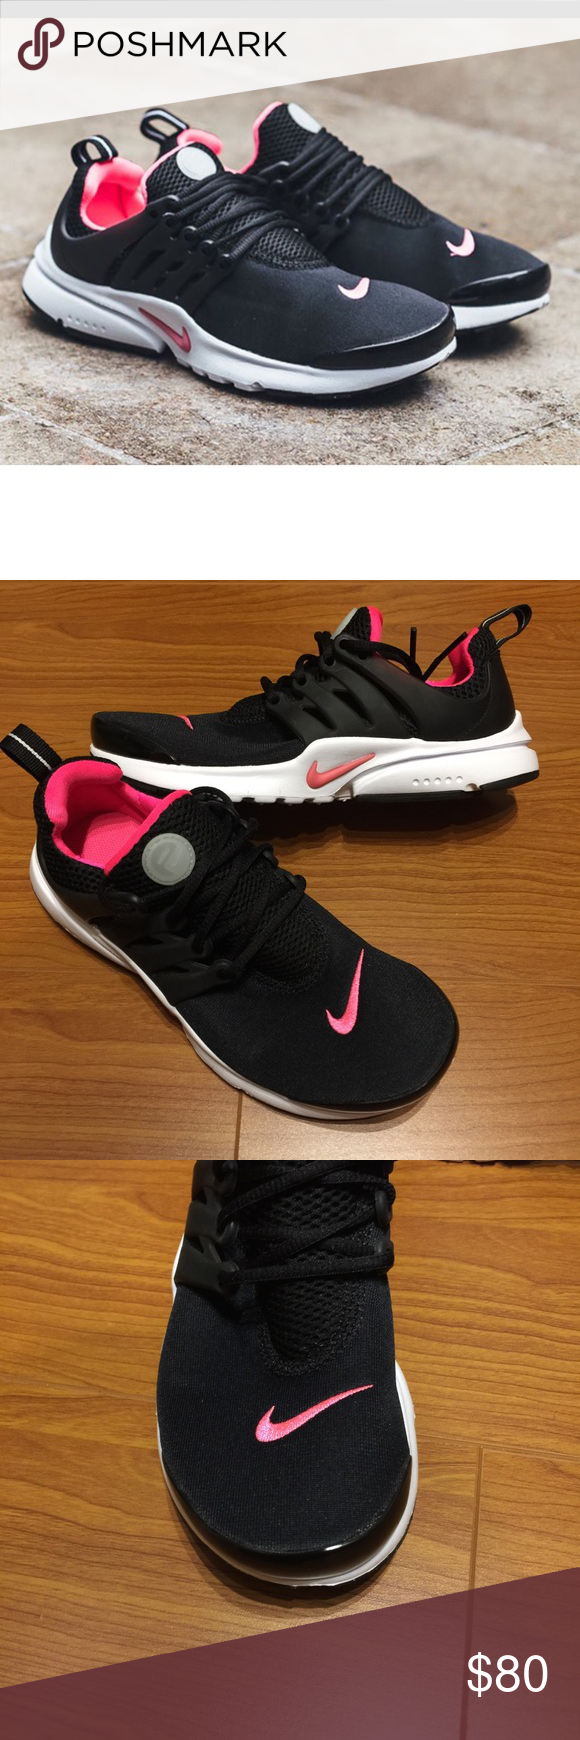 size 40 03545 010a7 New NIKE blk pink Presto GS ~ various sizes brand new no lid size 4Y fits  women s 6   size 6Y fits women s 8 black hyper pink white comes from smoke  free ...